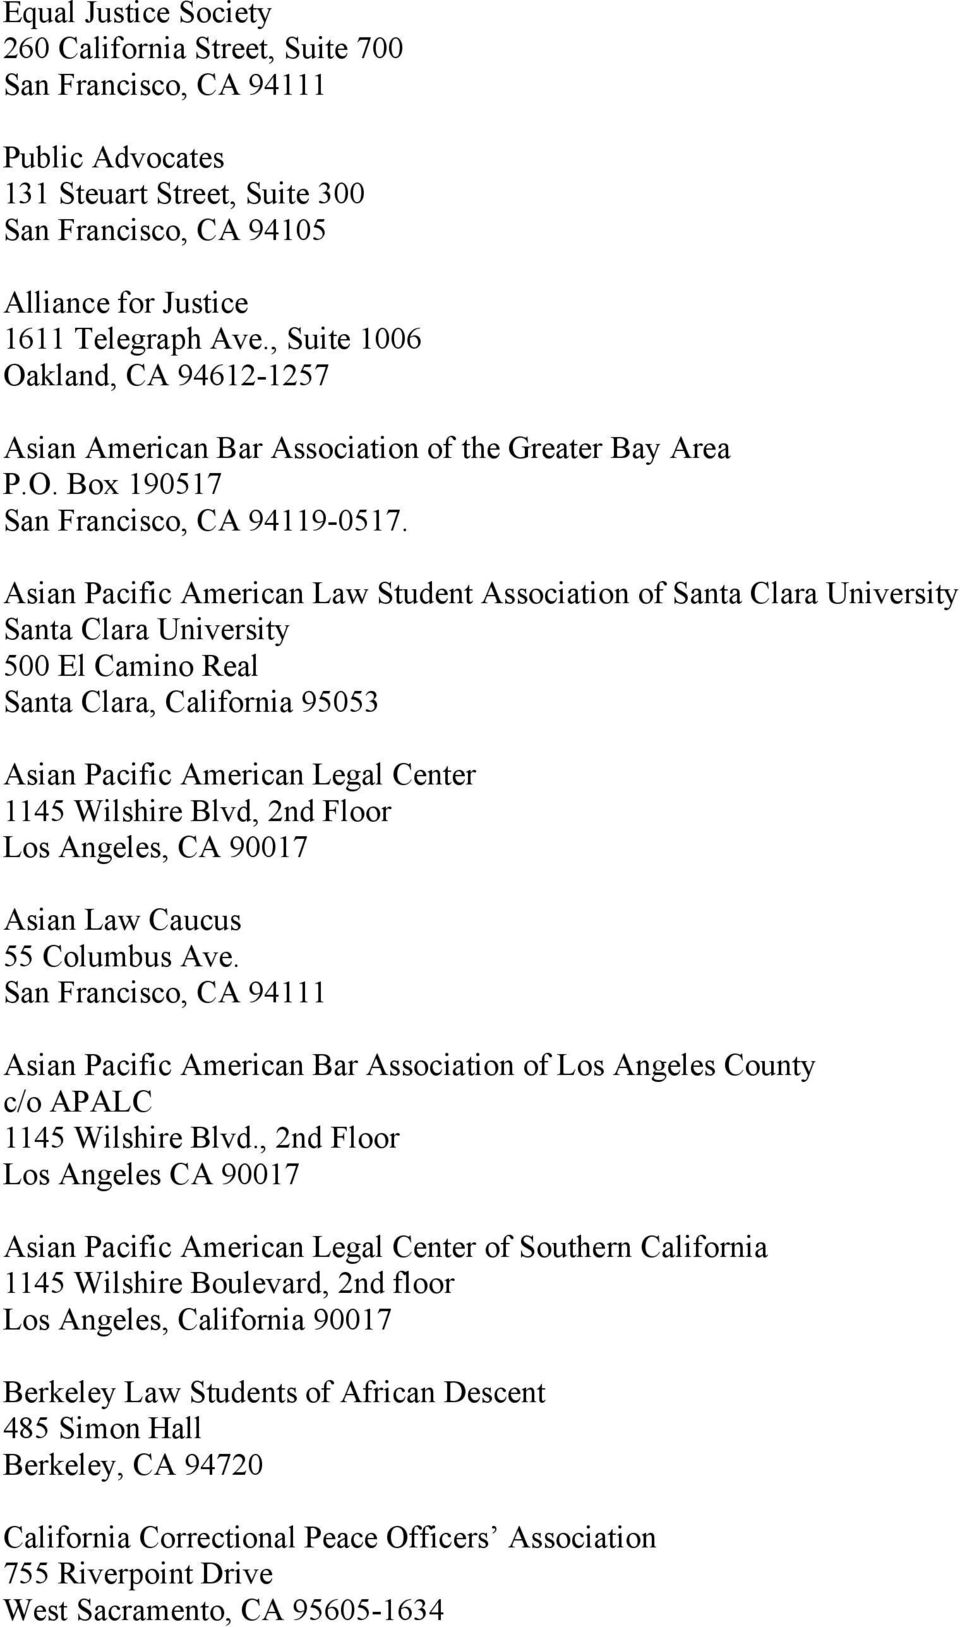 Asian Pacific American Law Student Association of Santa Clara University Santa Clara University 500 El Camino Real Santa Clara, California 95053 Asian Pacific American Legal Center 1145 Wilshire